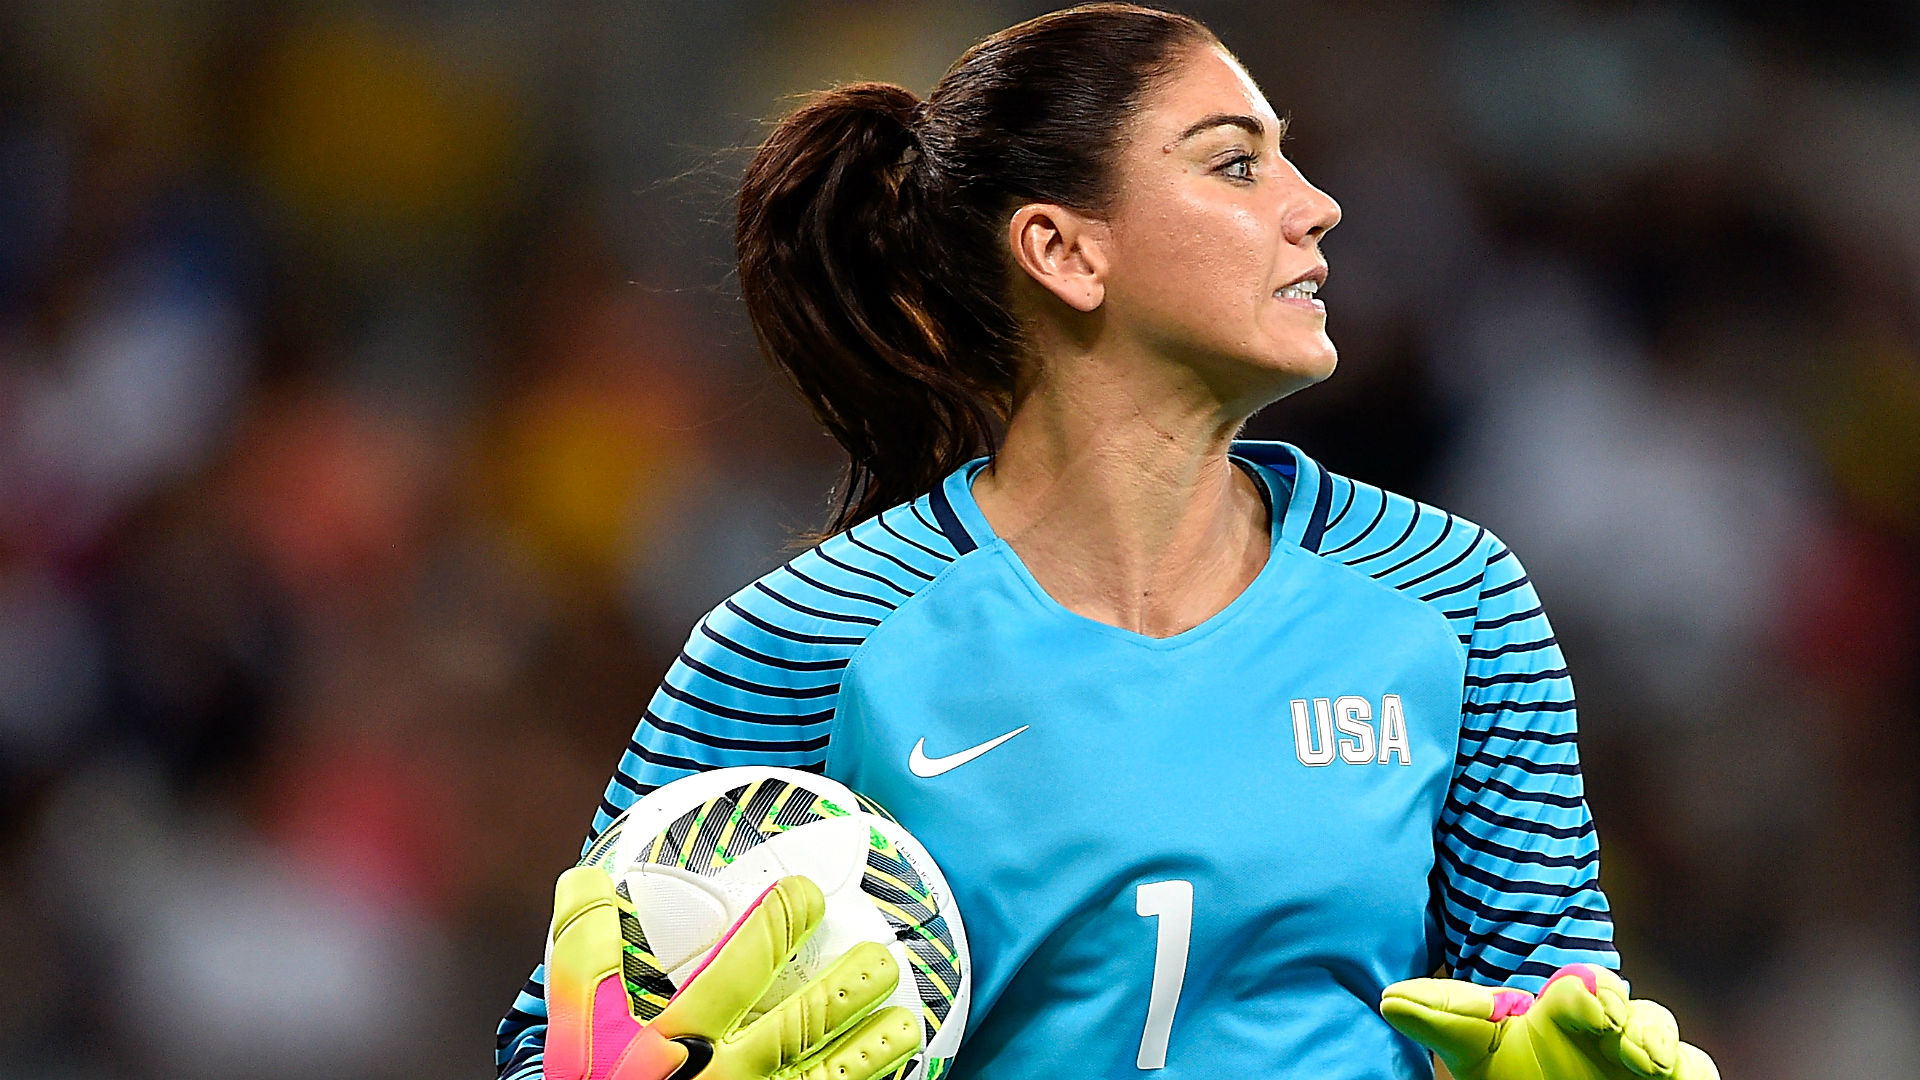 Hope Solo Gets Booed at Olympics After Controversial Zika Tweets